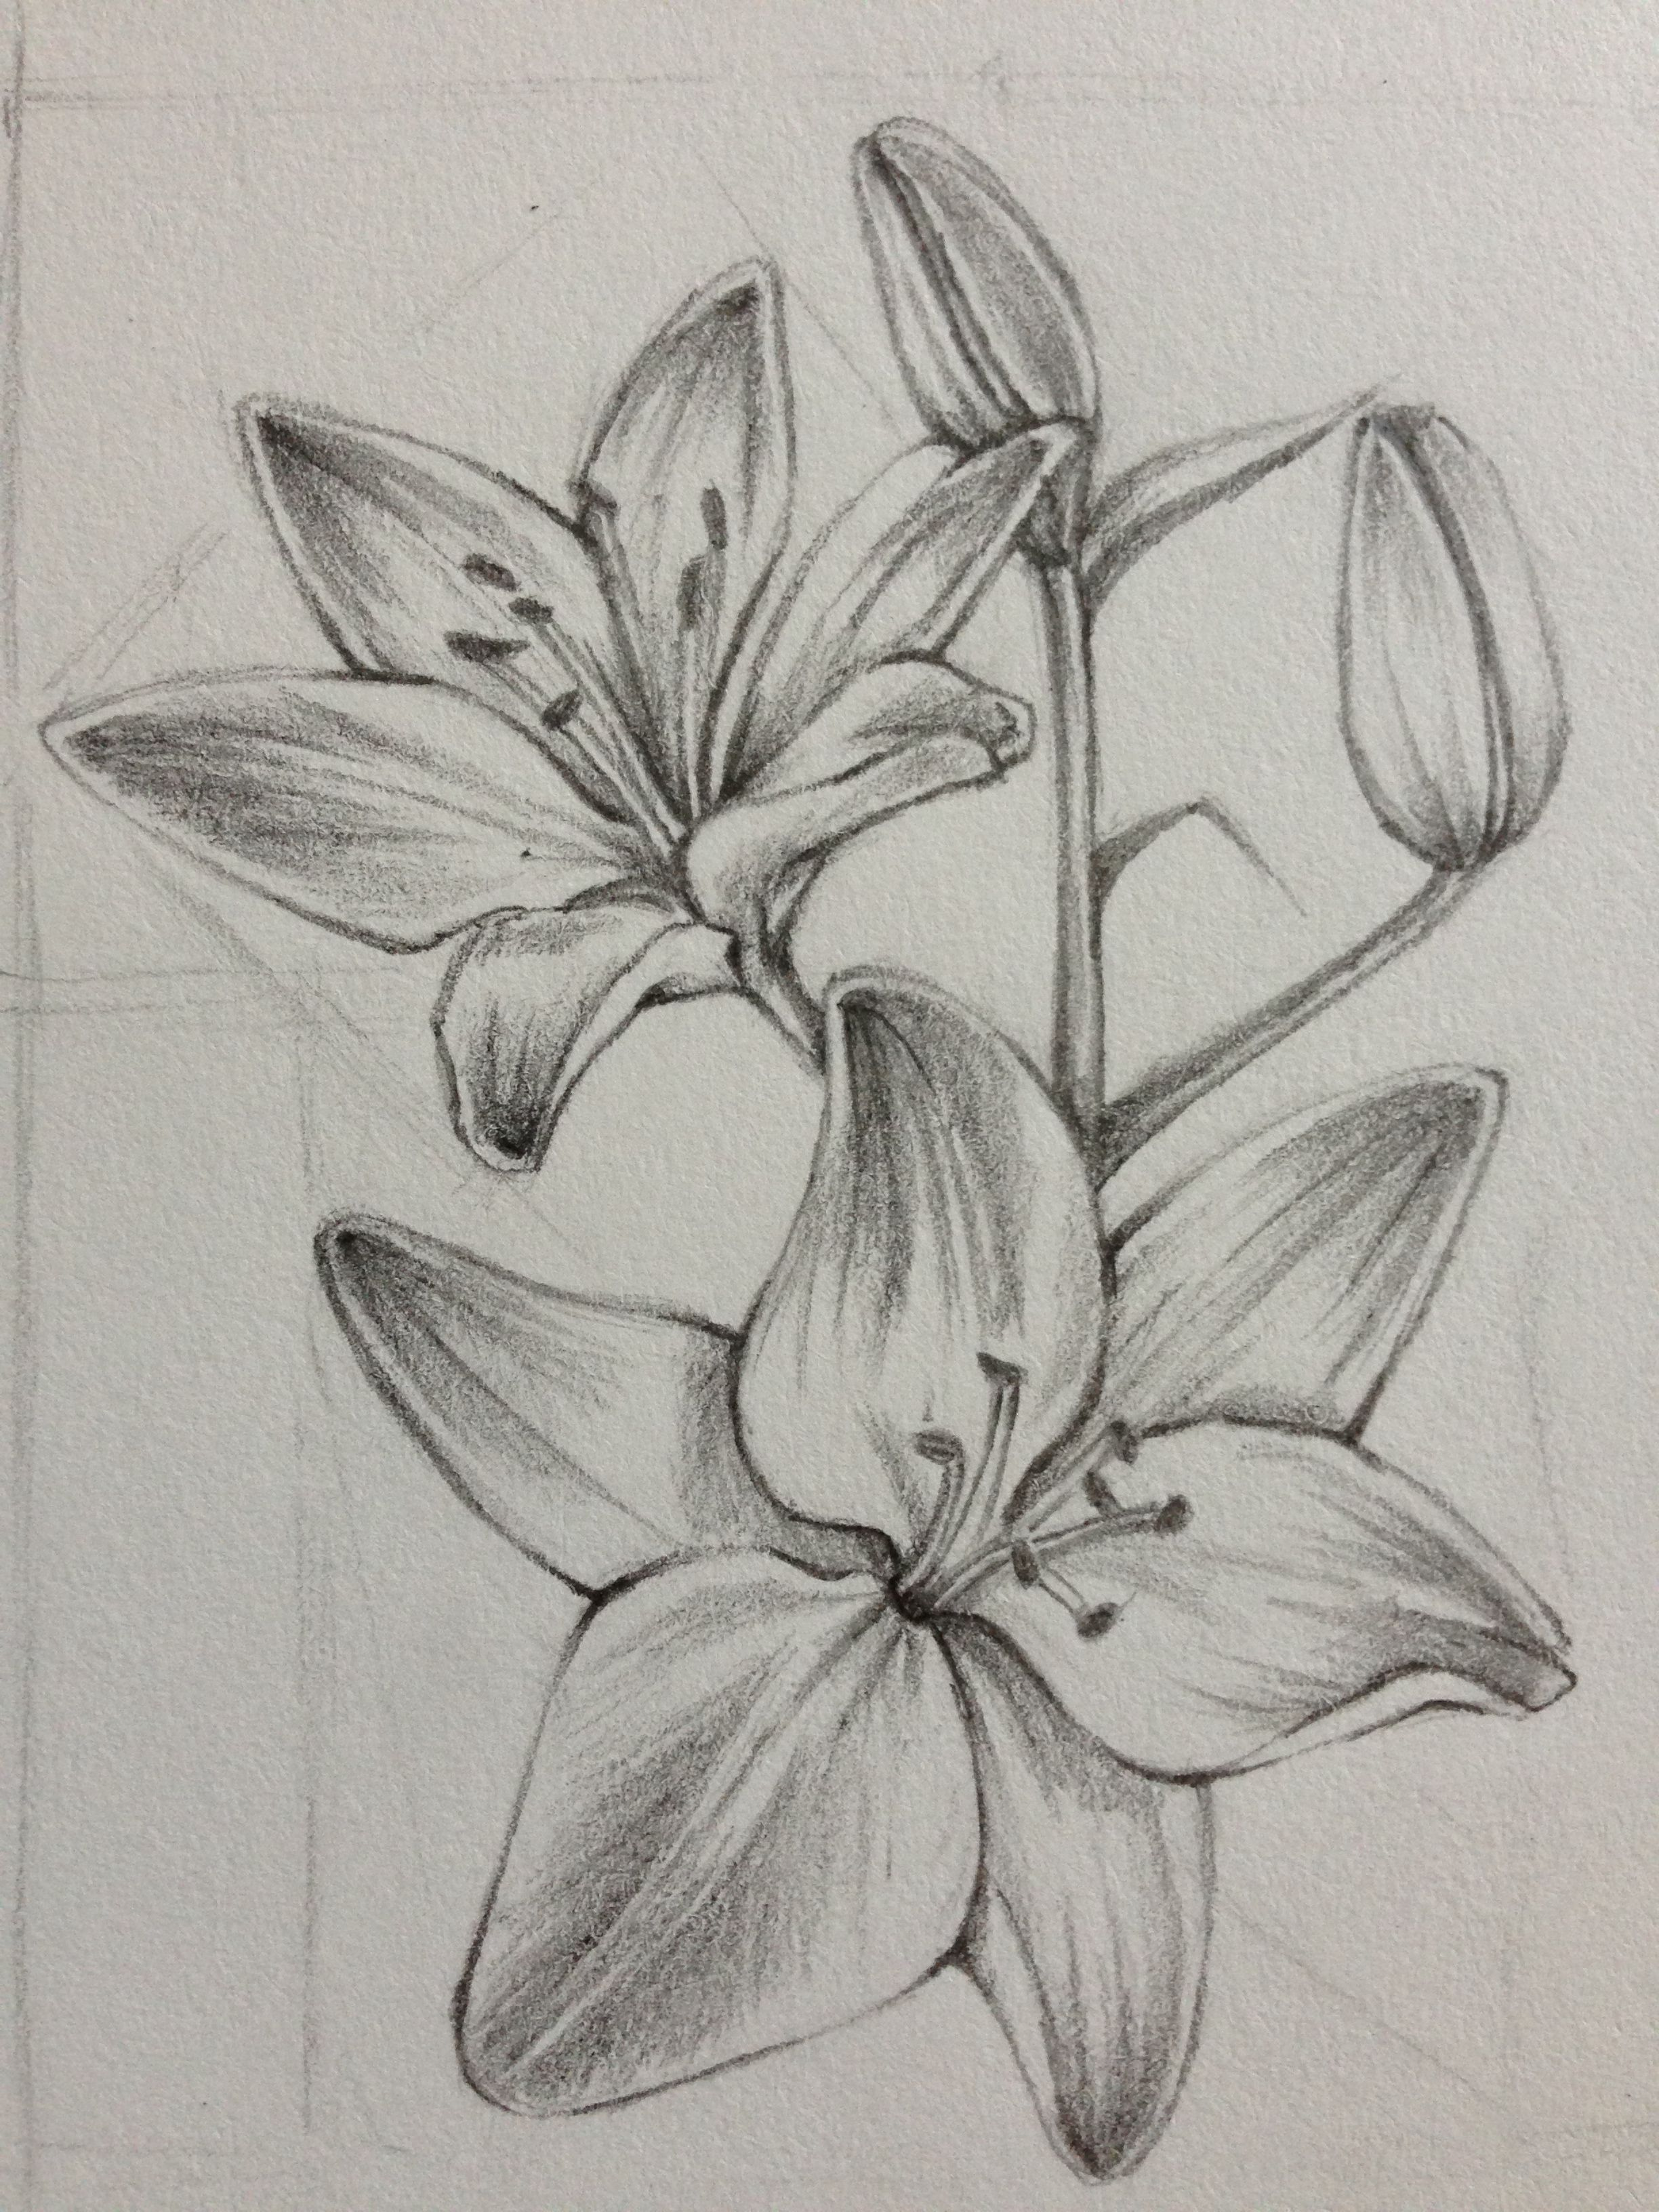 Realistic Lily Flower Drawing : realistic, flower, drawing, Flower, Realistic, Drawing,, Pencil, Drawings, Flowers,, Drawing